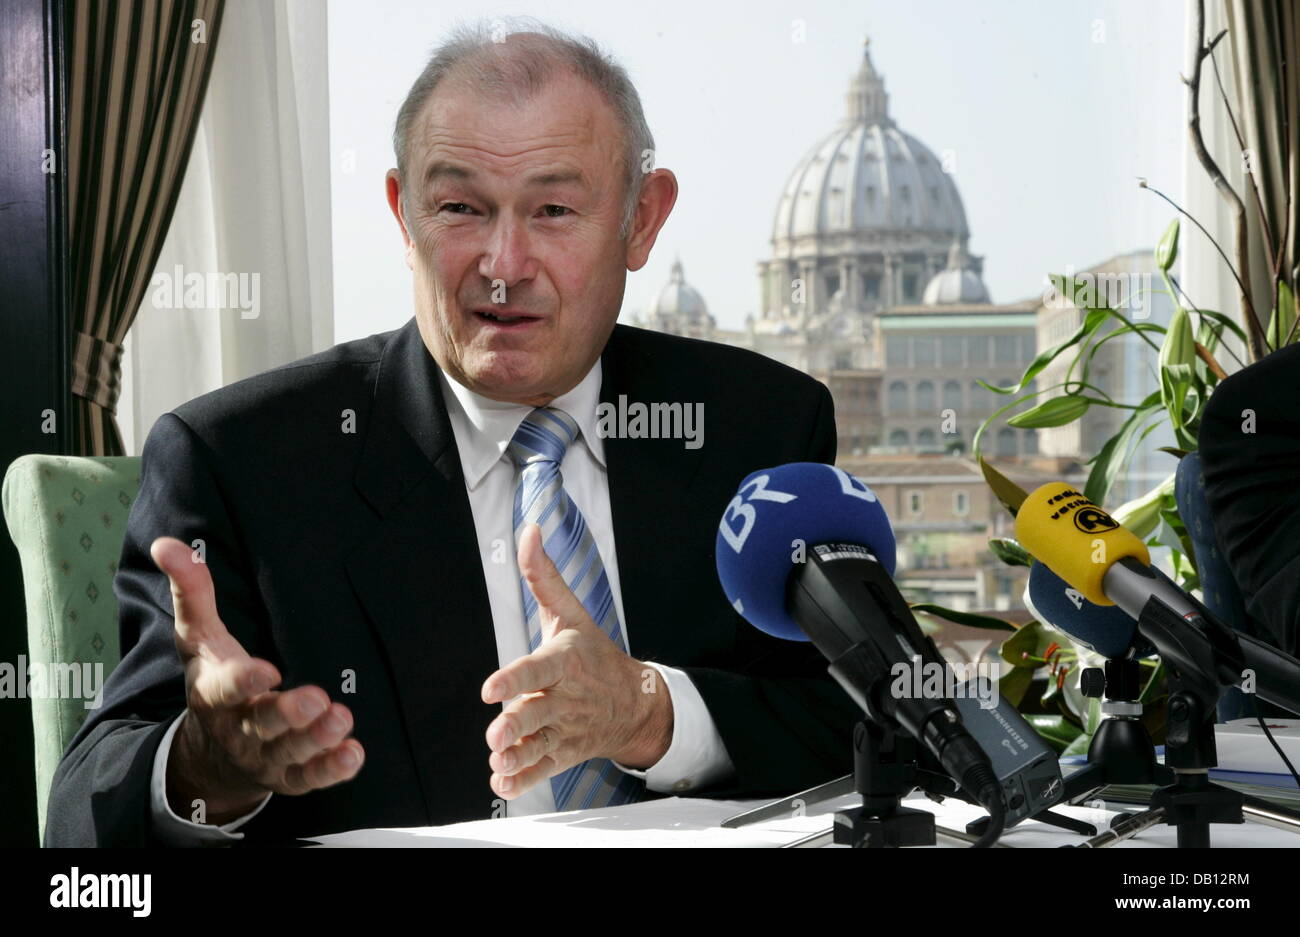 Bavarian Prime Minsiter Guenther Beckstein gestures during a press conference in Vatican City, Vatican City State, - Stock Image